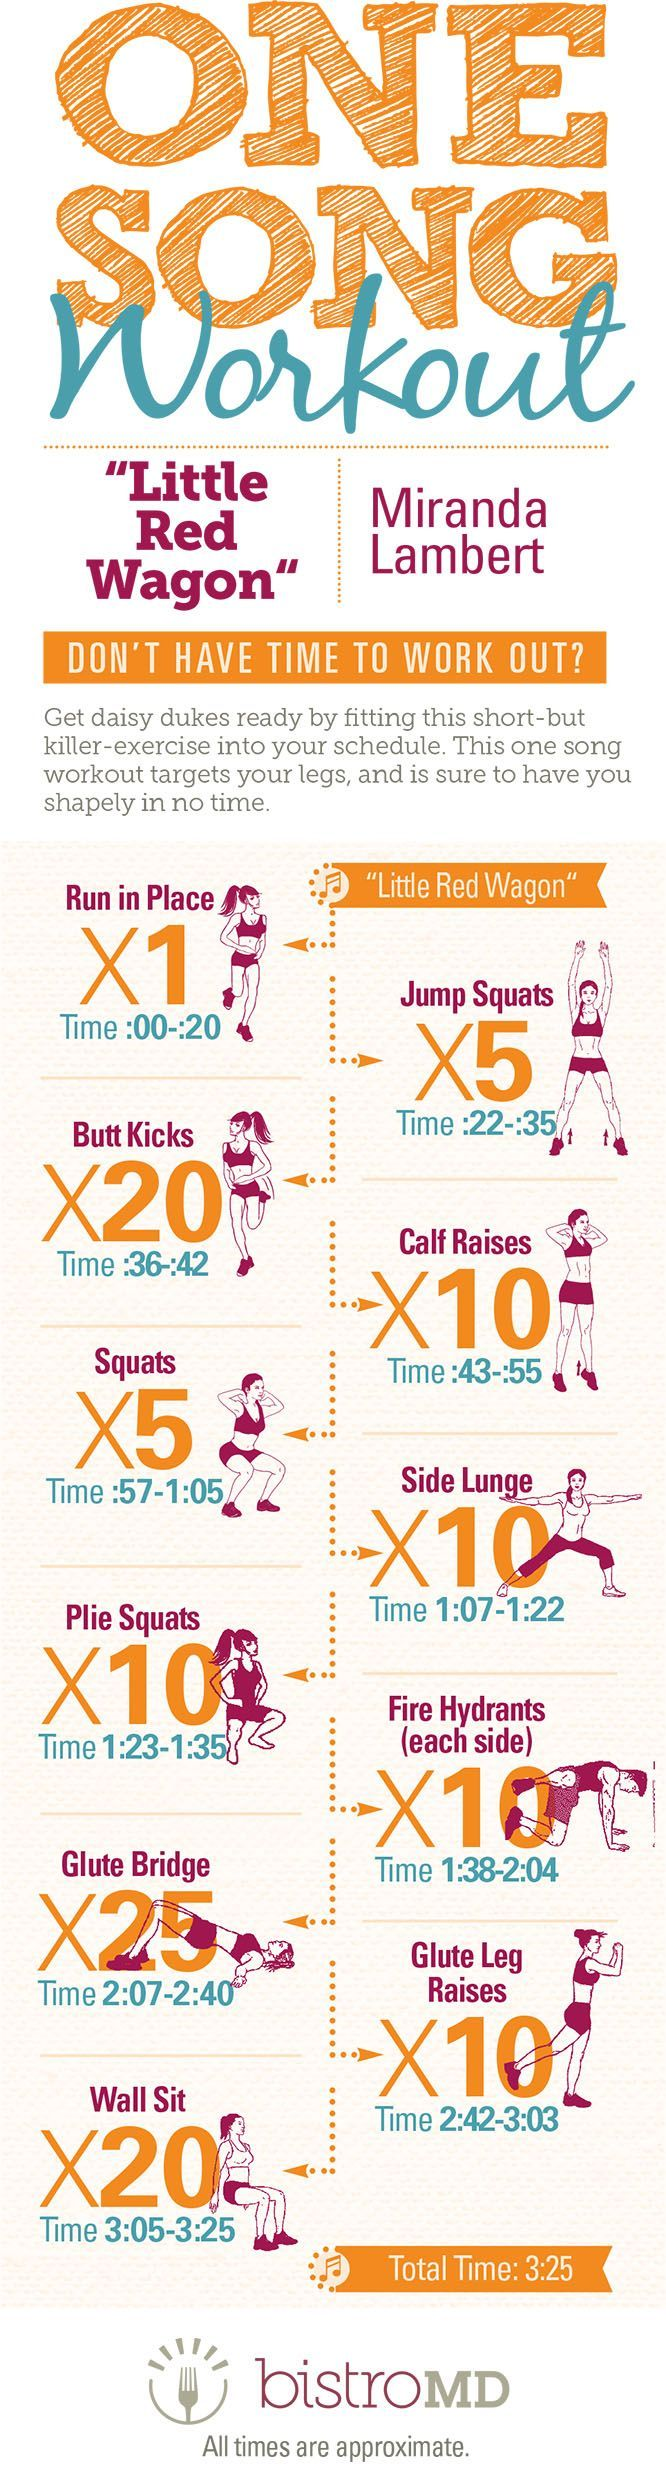 "Don't think you have time to workout? Think again! Get your daisy dukes ready for any occasion with this fun HIIT (high intensity interval training) leg workout to hit song, ""Little Red Wagon"" by Miranda Lambert. In less than 4 minutes you'll have your leg workout for the day complete! #fitness"